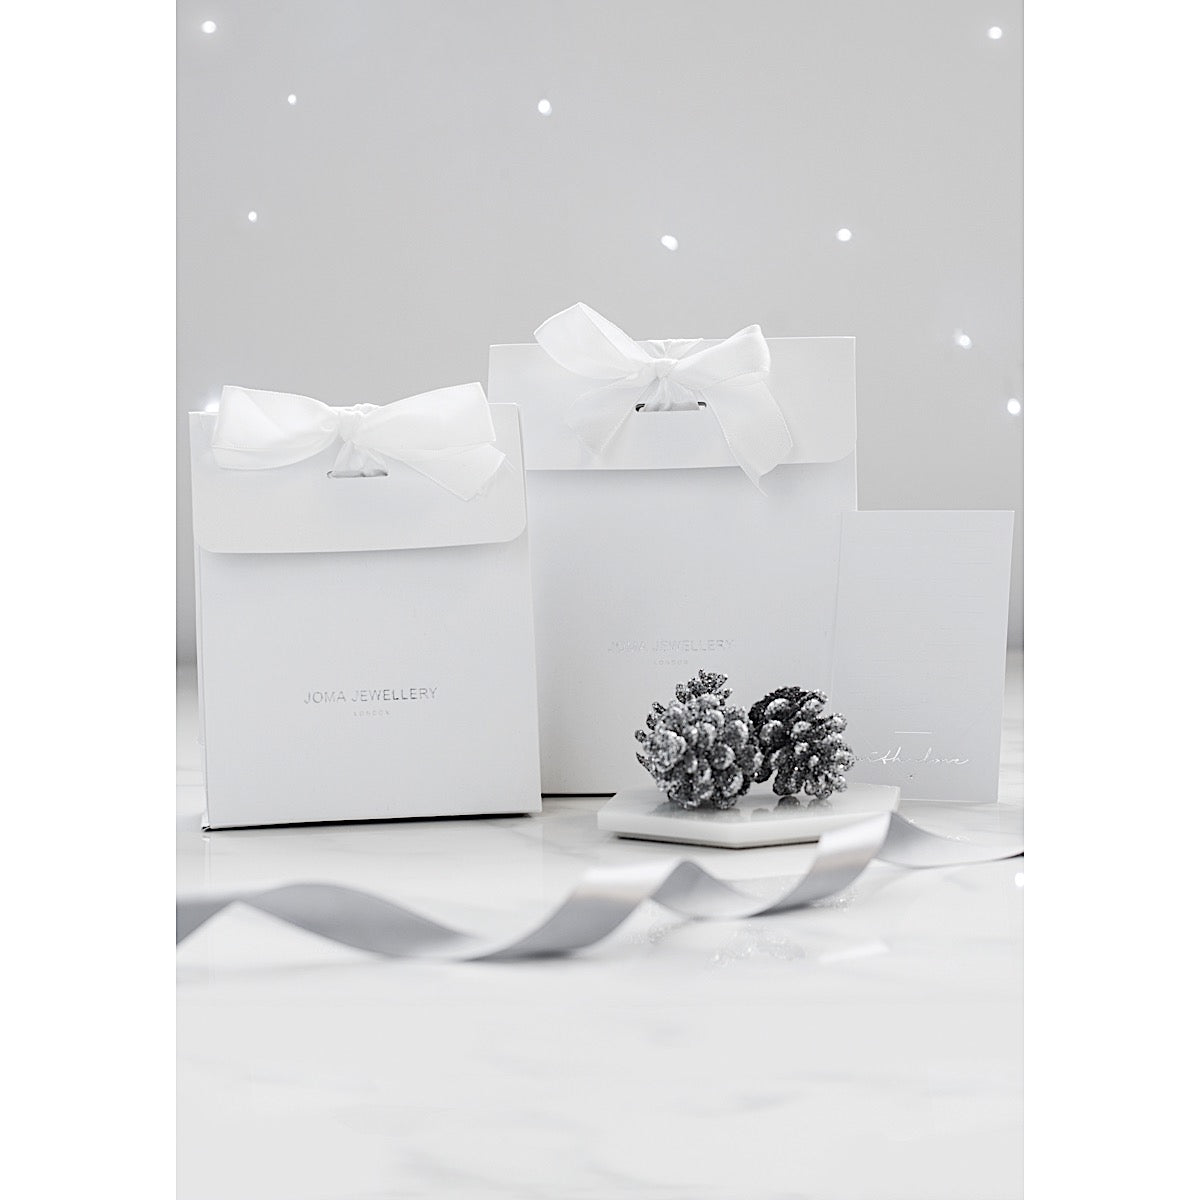 Joma a little Maid of Honour Bracelet - bow | More Than Just at Gift | Narborough Hall